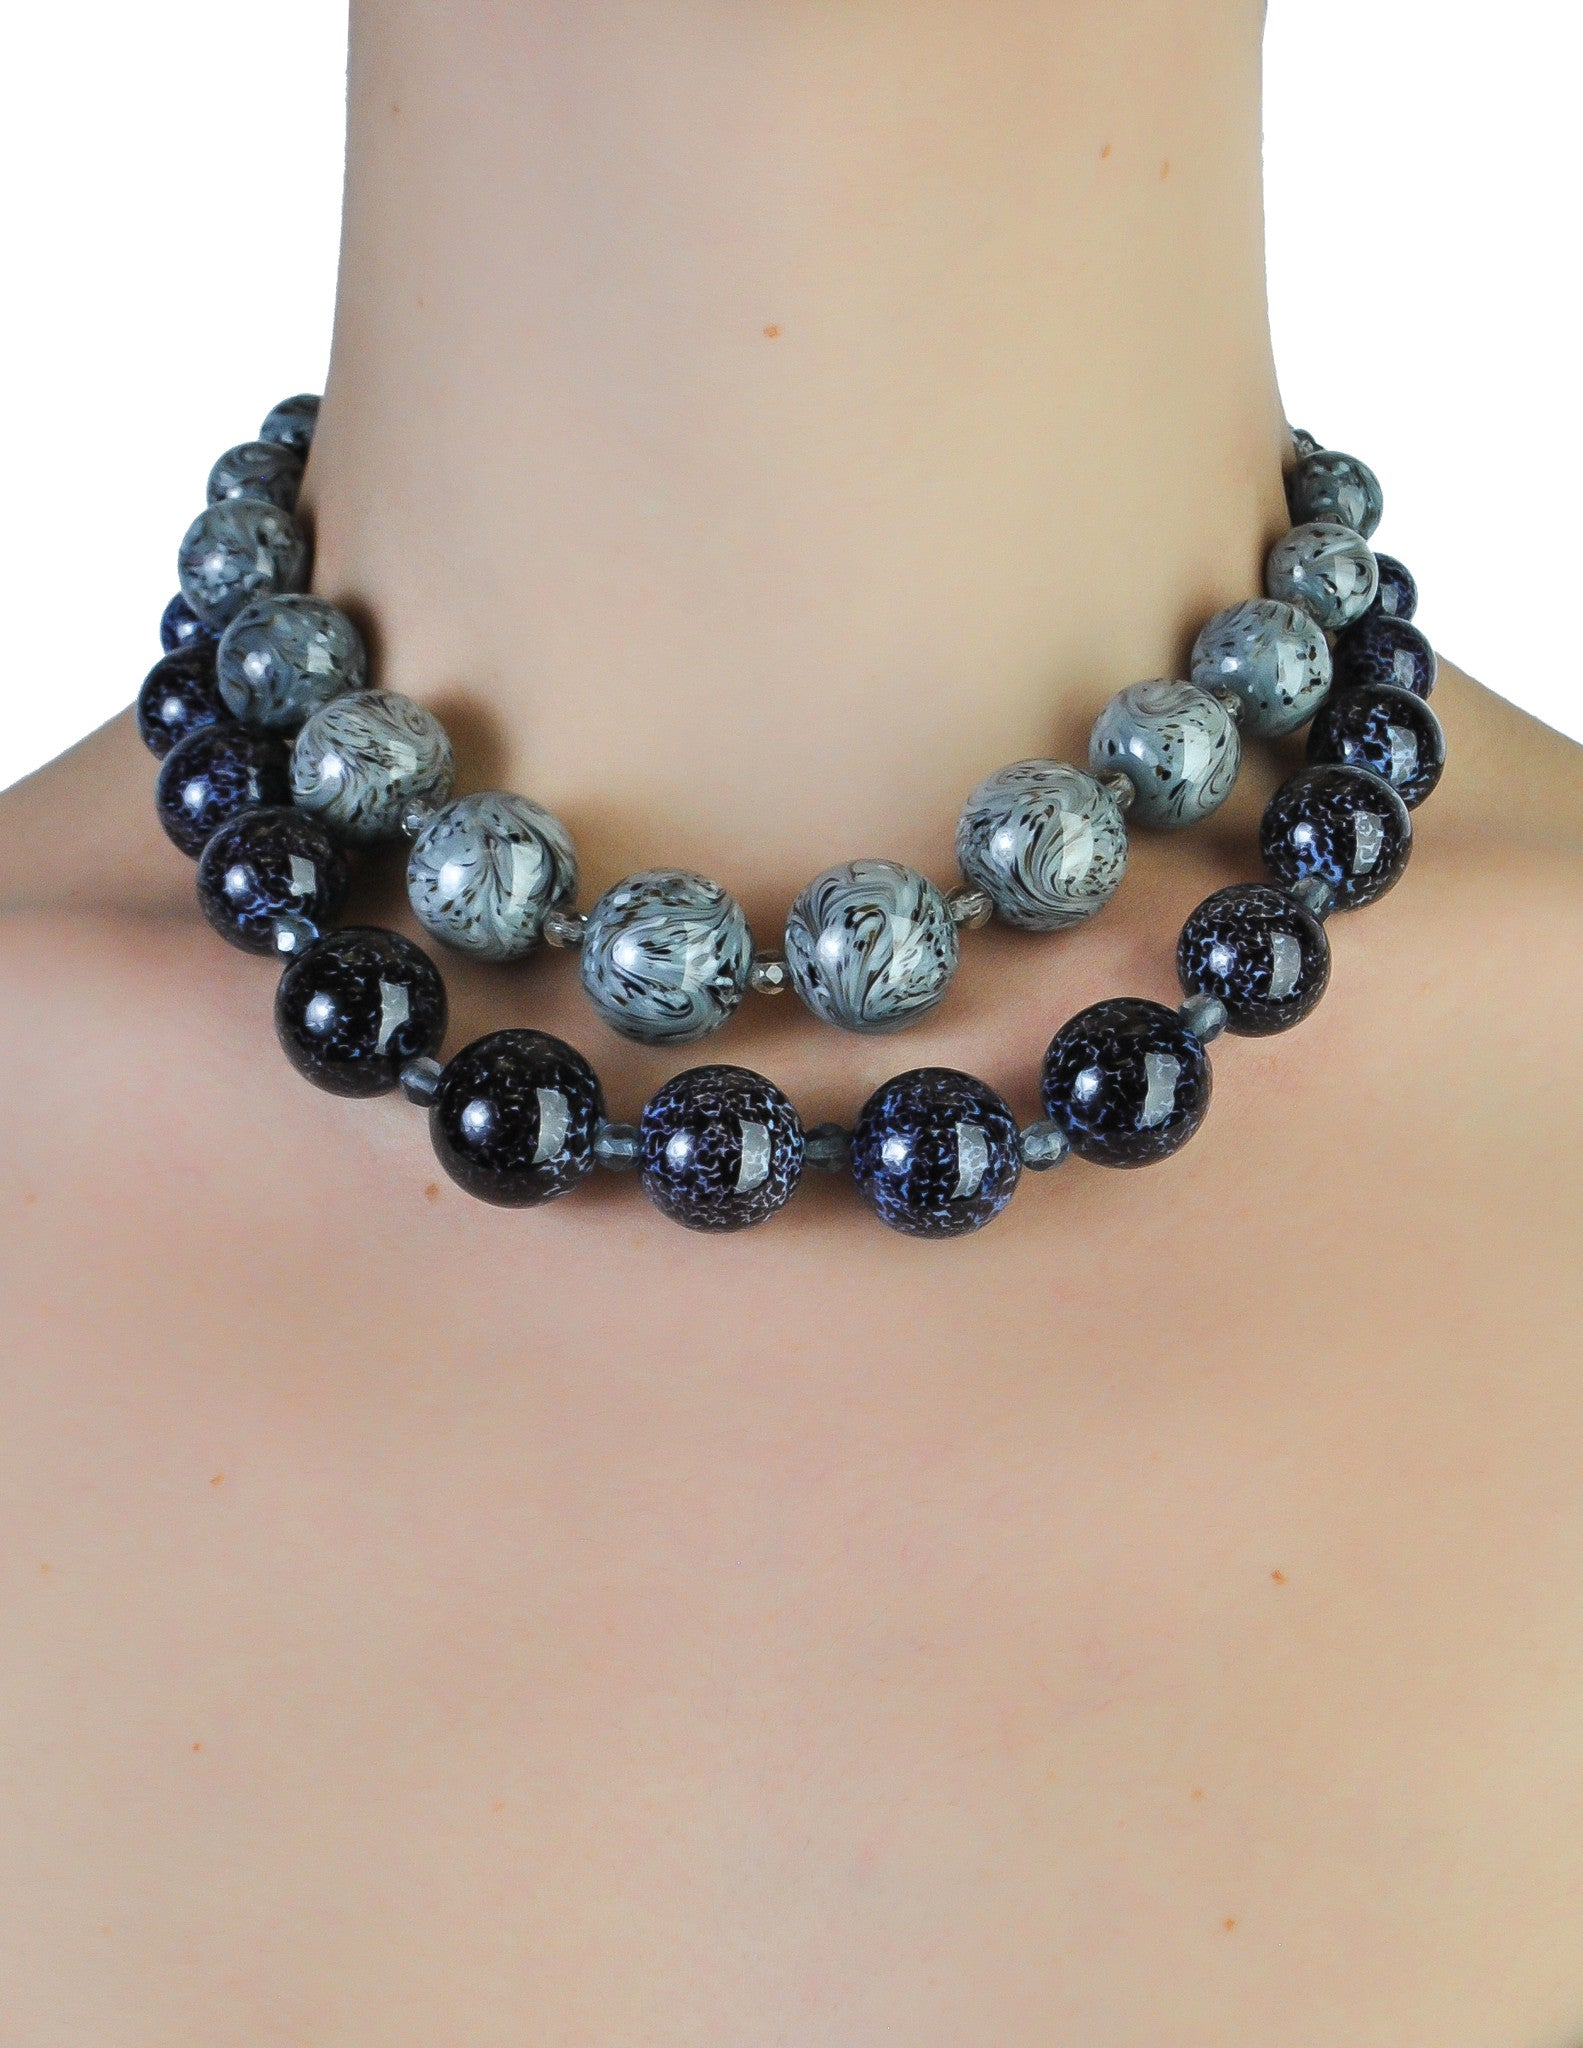 Christian Dior Vintage Two Tone Blue Marble Glass Bead Necklace - Amarcord Vintage Fashion  - 1